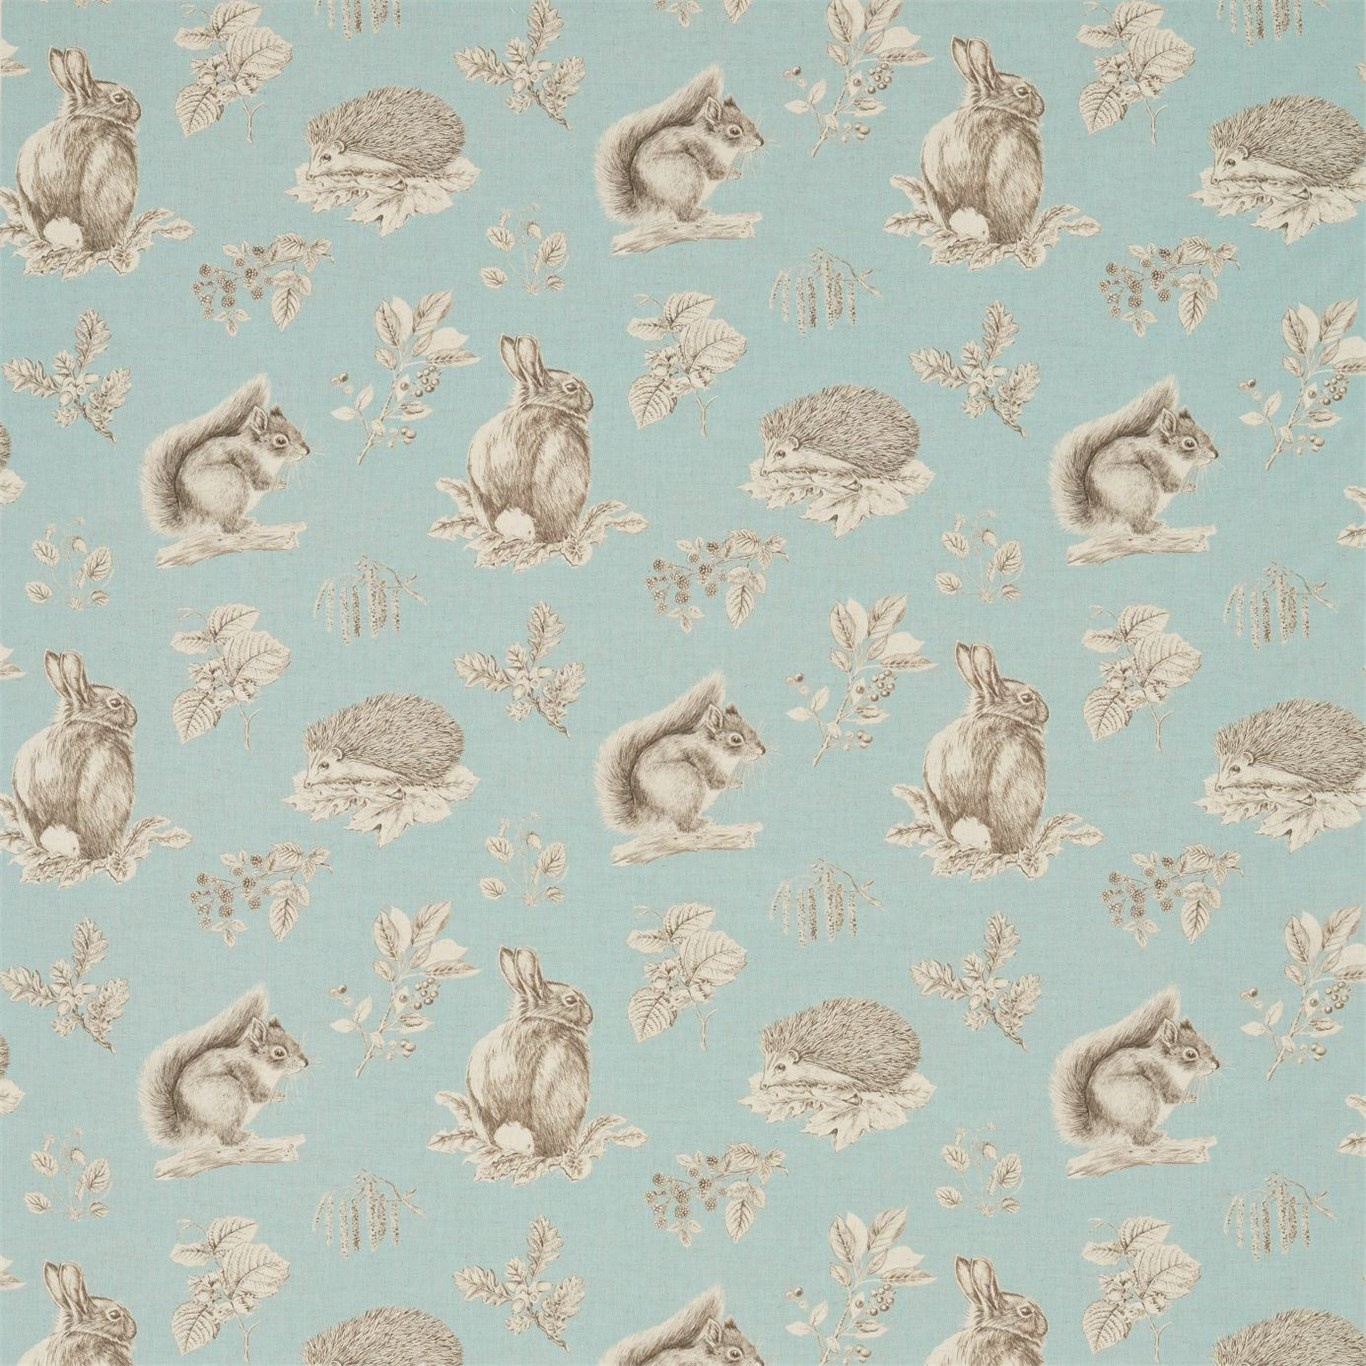 Image of Sanderson Squirrel & Hedgehog Sky Blue/Pebble Fabric 225521